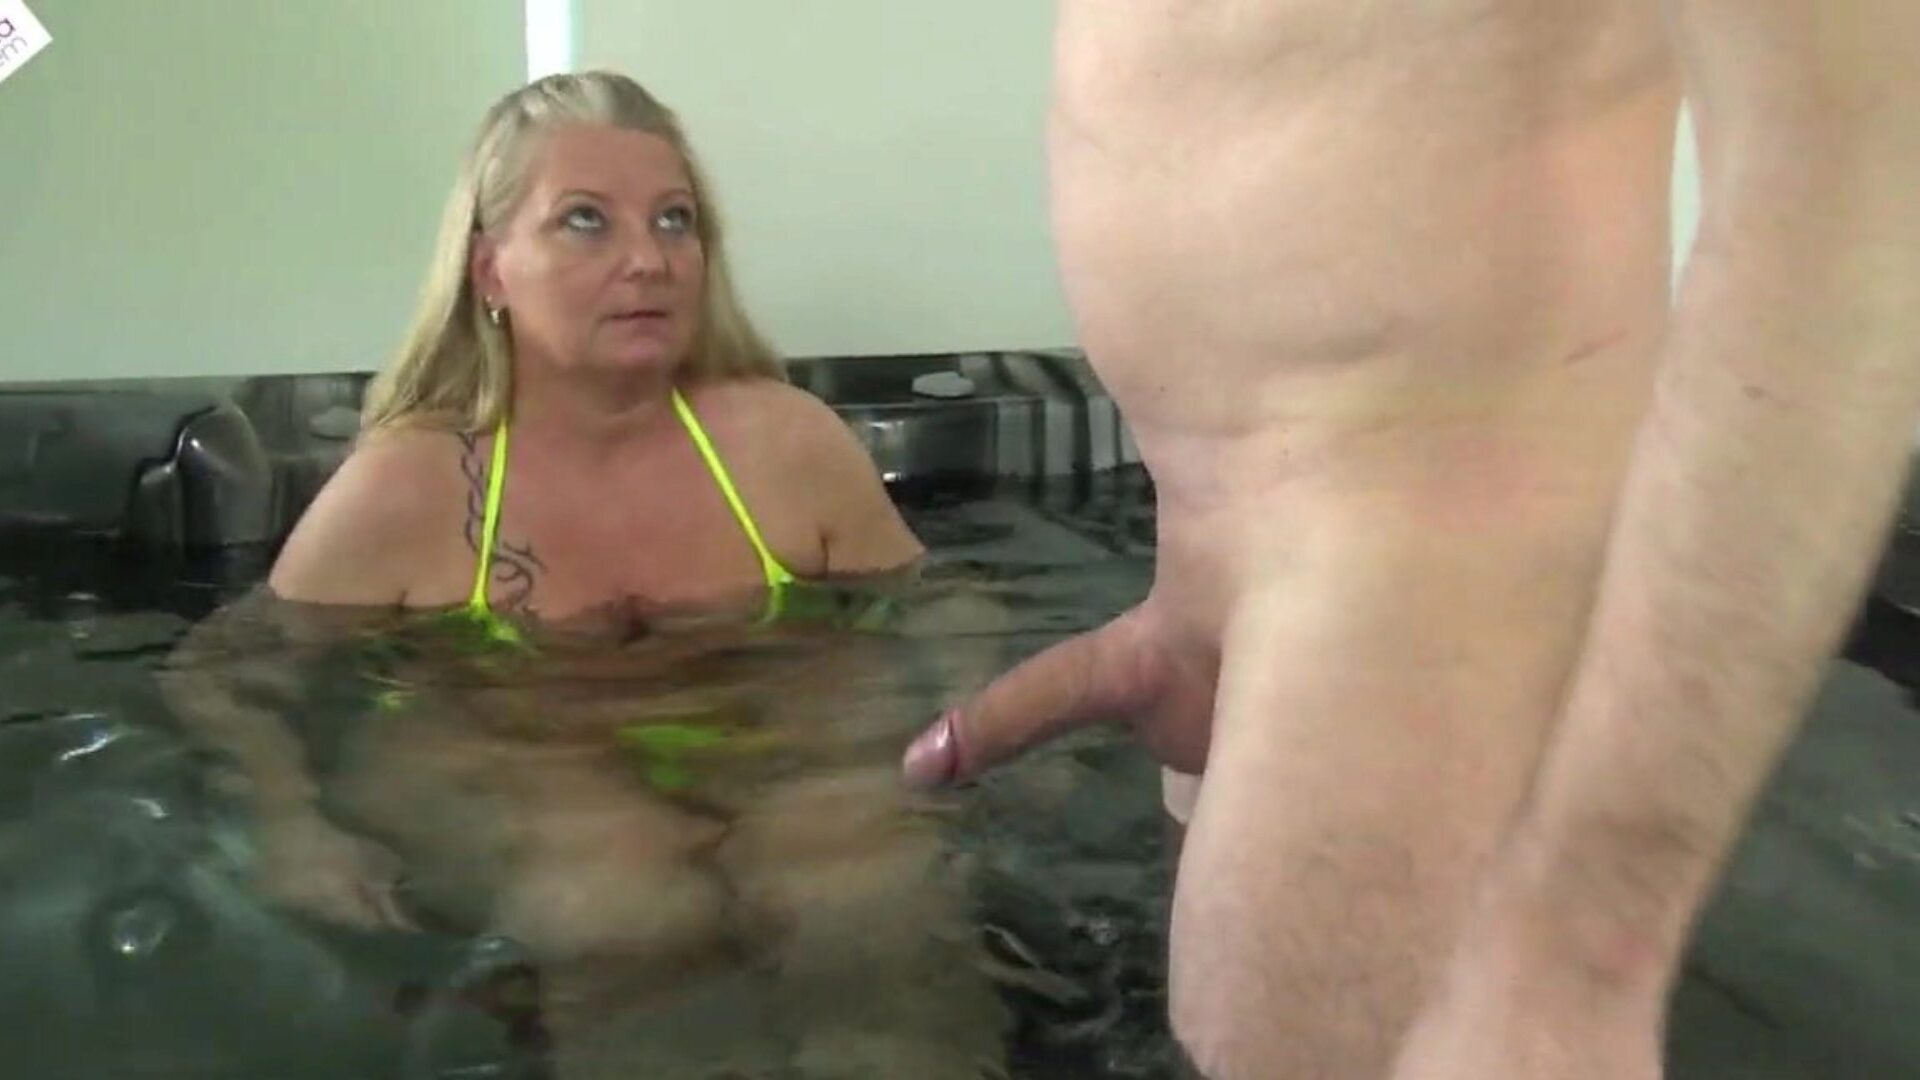 Pervers Piss Orgy in a Swimming Pool with 5 Girls and four Watch Perverted Piss Orgy in a Swimming Pool with five Girls and 4 Men movie on xHamster - the ultimate database of free German Submissive Slut HD pornography tube clips